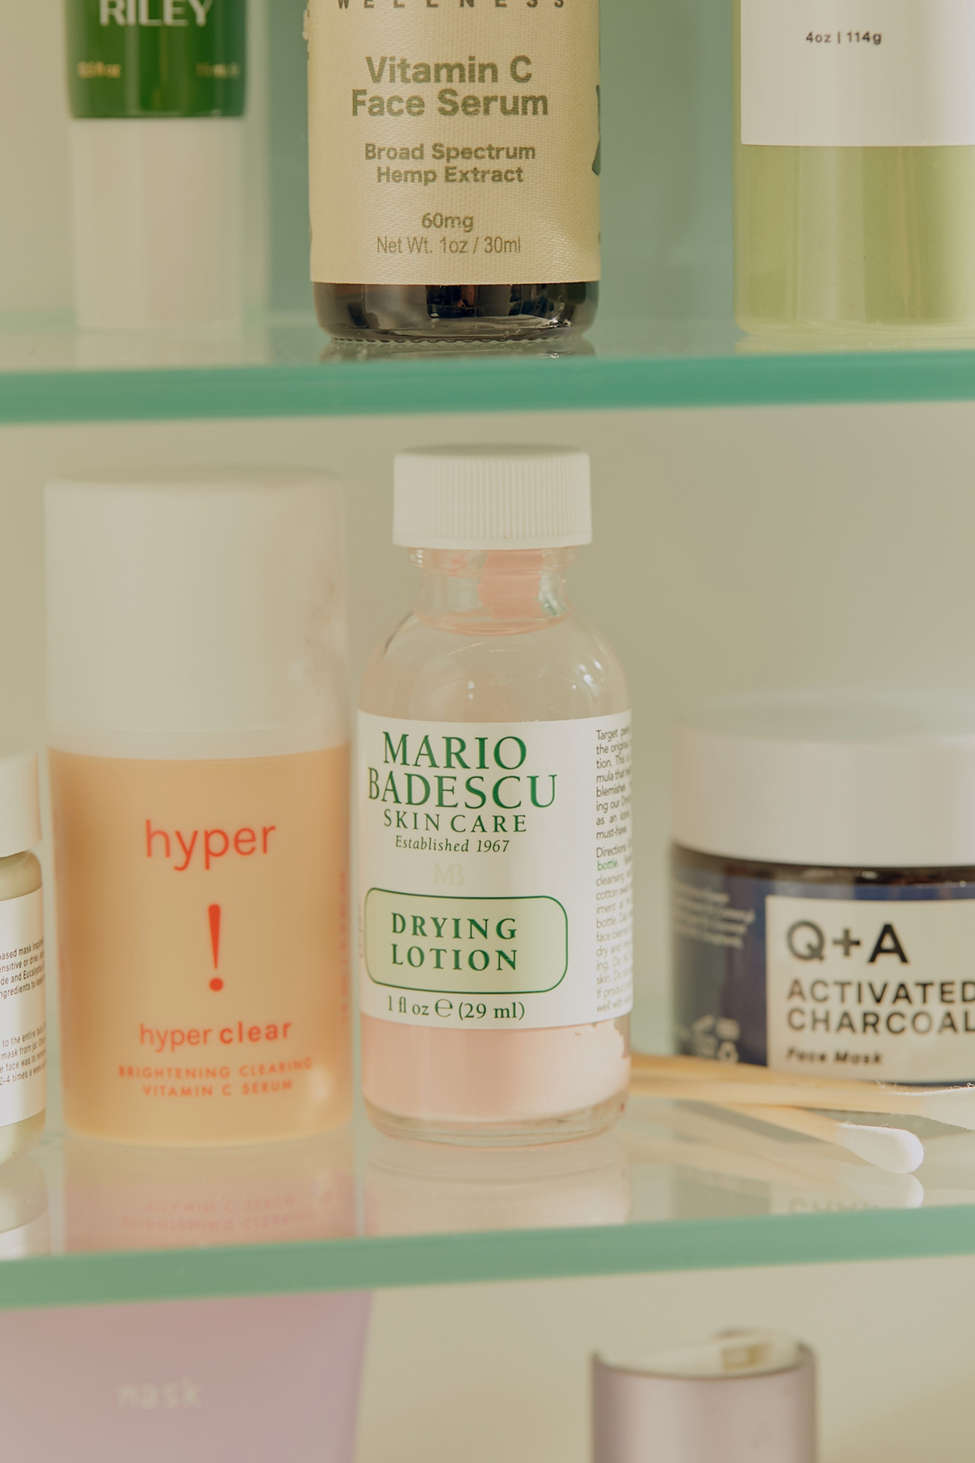 Mario Badescu Drying Lotion Urban Outfitters